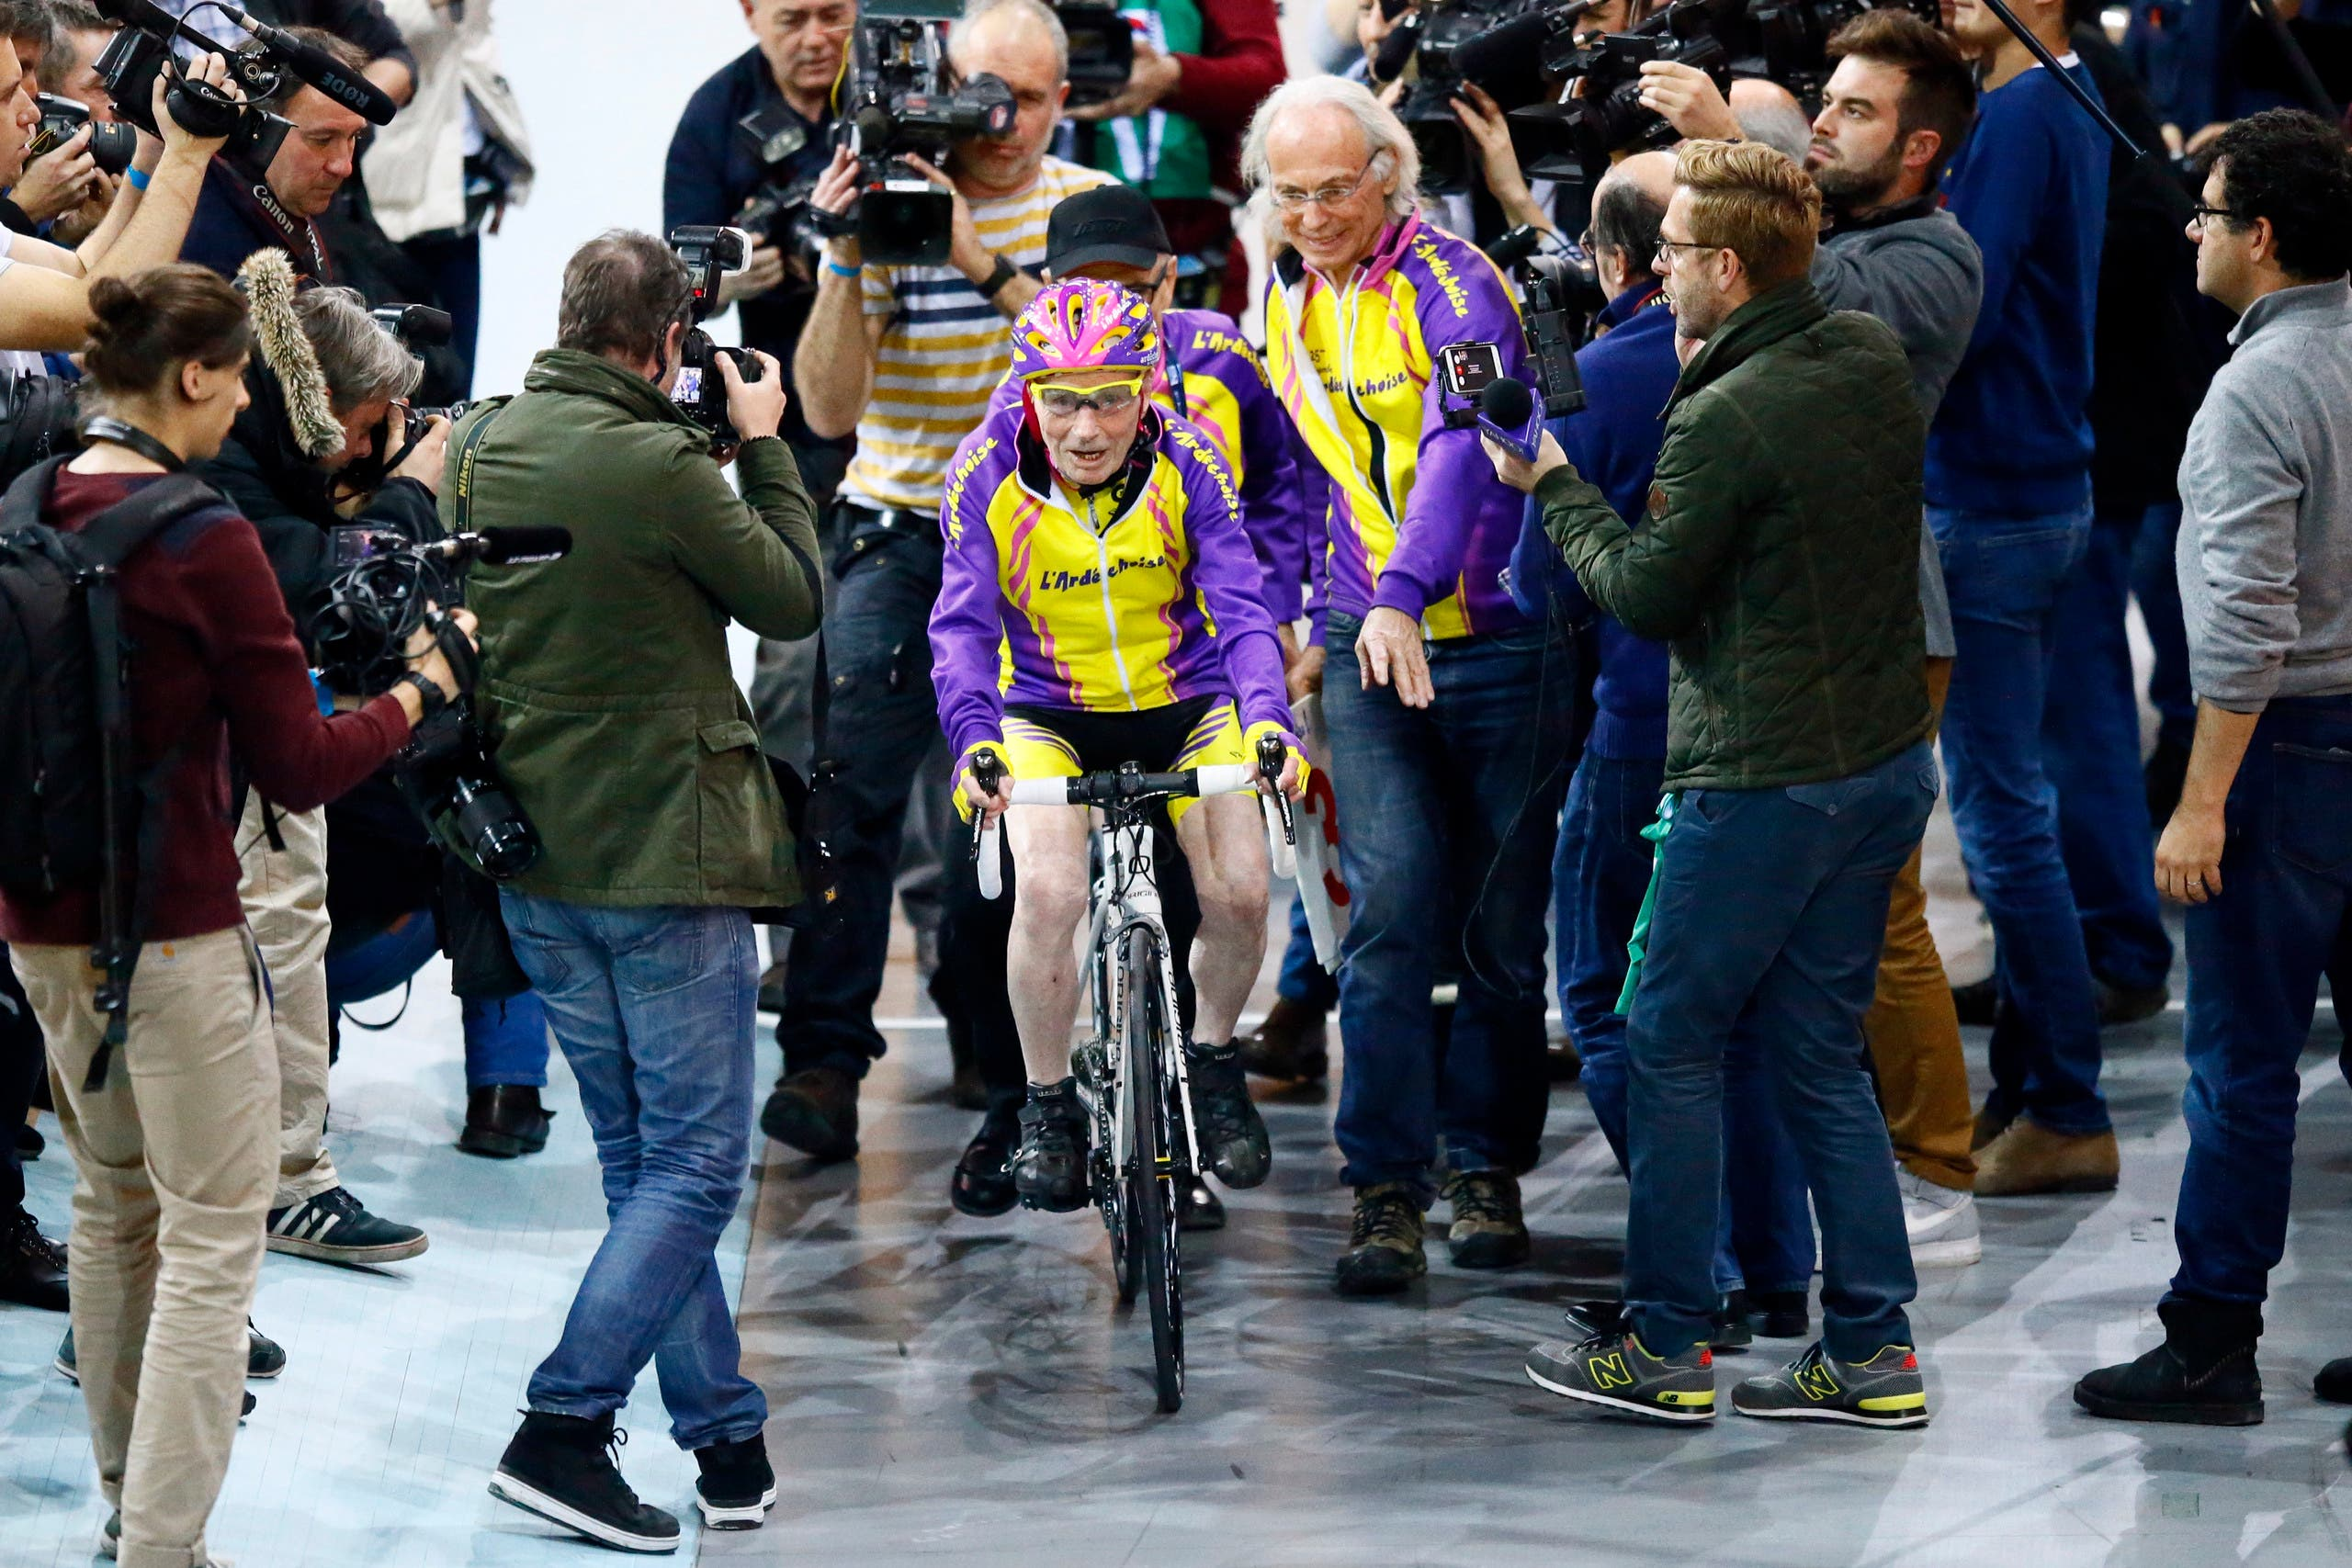 French cyclist Robert Marchand, aged 105, prepares to warm up prior to cycle in a bid to beat his record for distance cycled in one hour, at the velodrome of Saint-Quentin en Yvelines, outside Paris, Wednesday, Jan. 4, 2017. (AP)